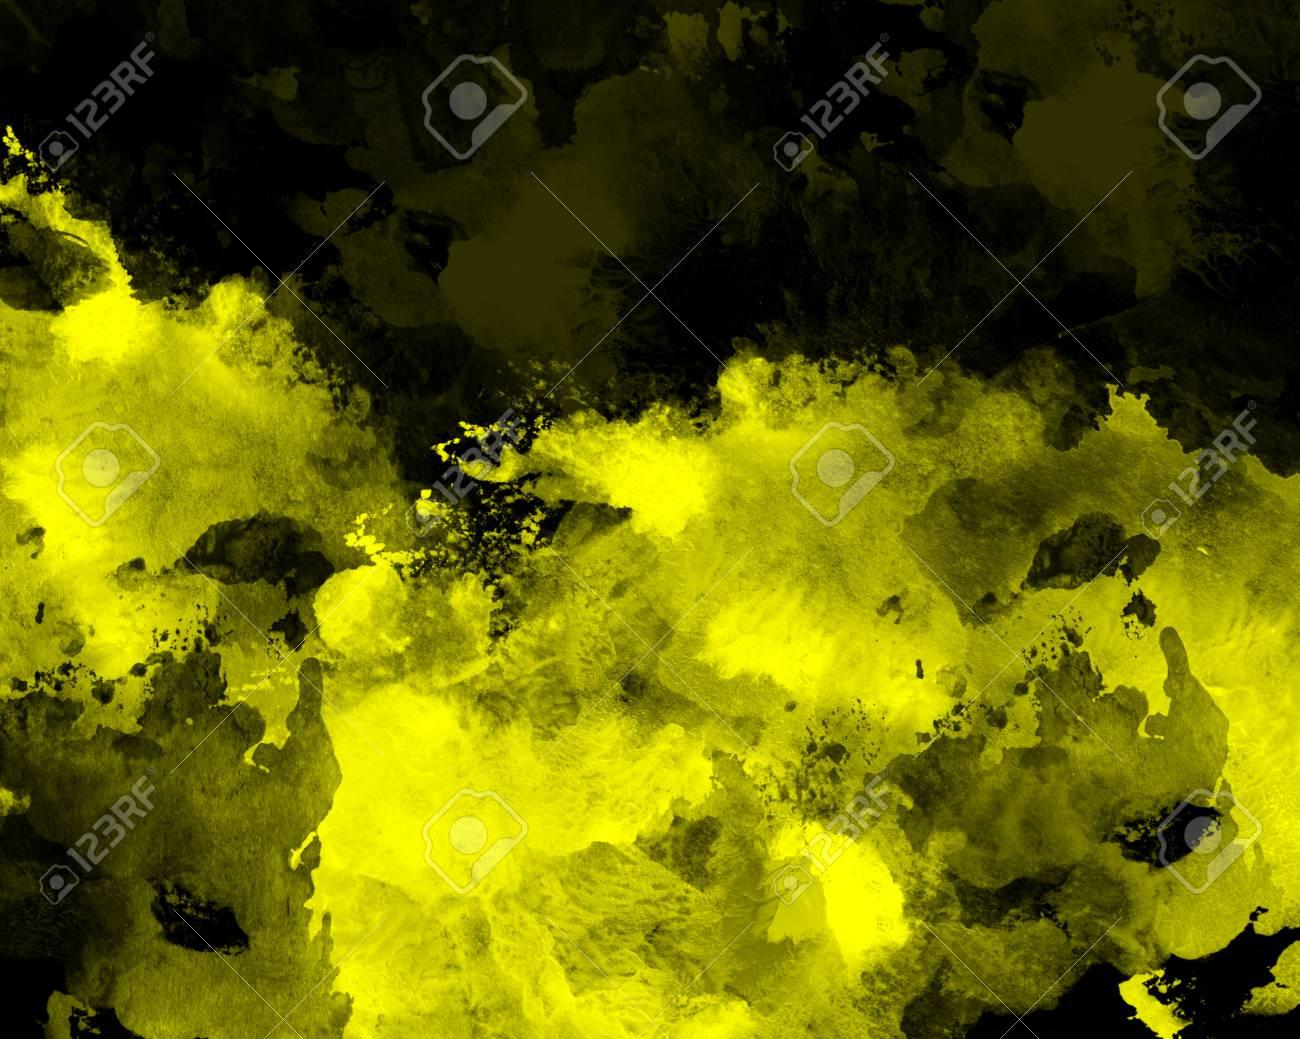 Yellow Graphic Watercolor Grunge Background. Decoration, Abstract ...